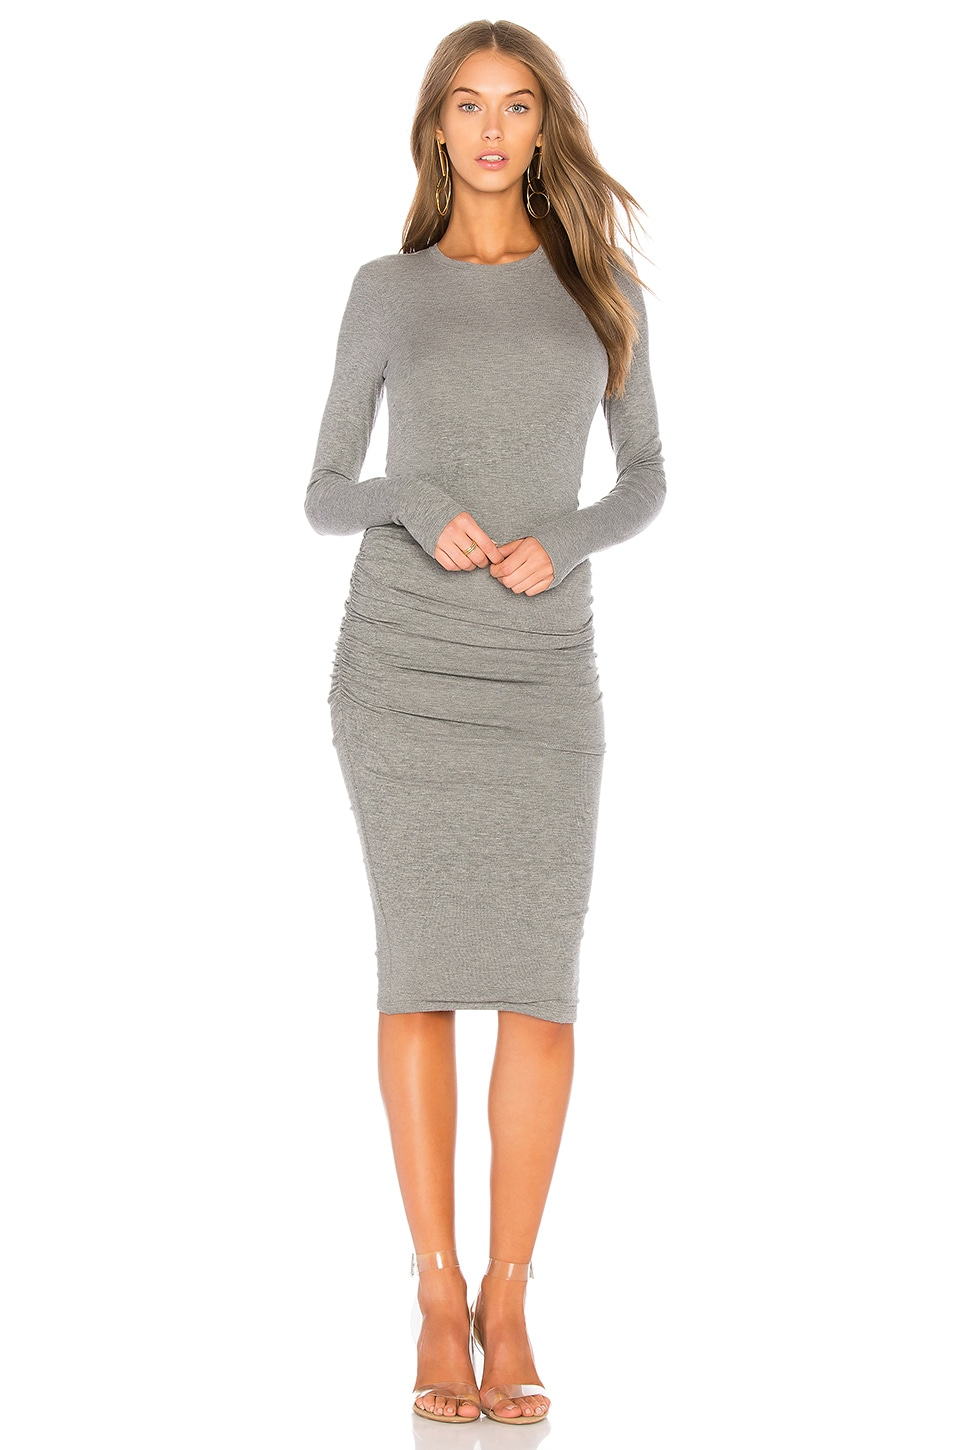 Rib Knit Dress by ATM Anthony Thomas Melillo